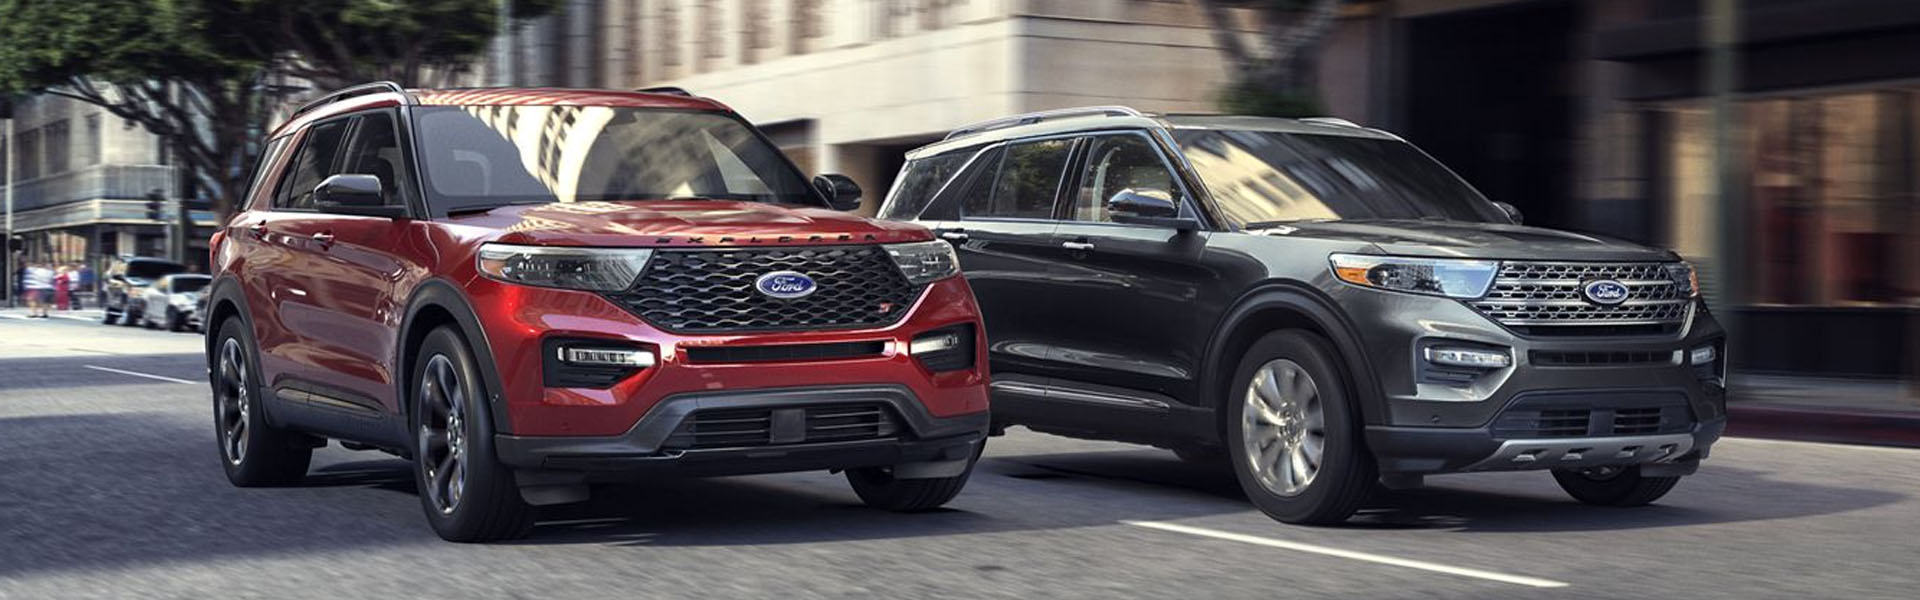 2020 Ford Explorer For Sale Rtown Ford My Local Ford